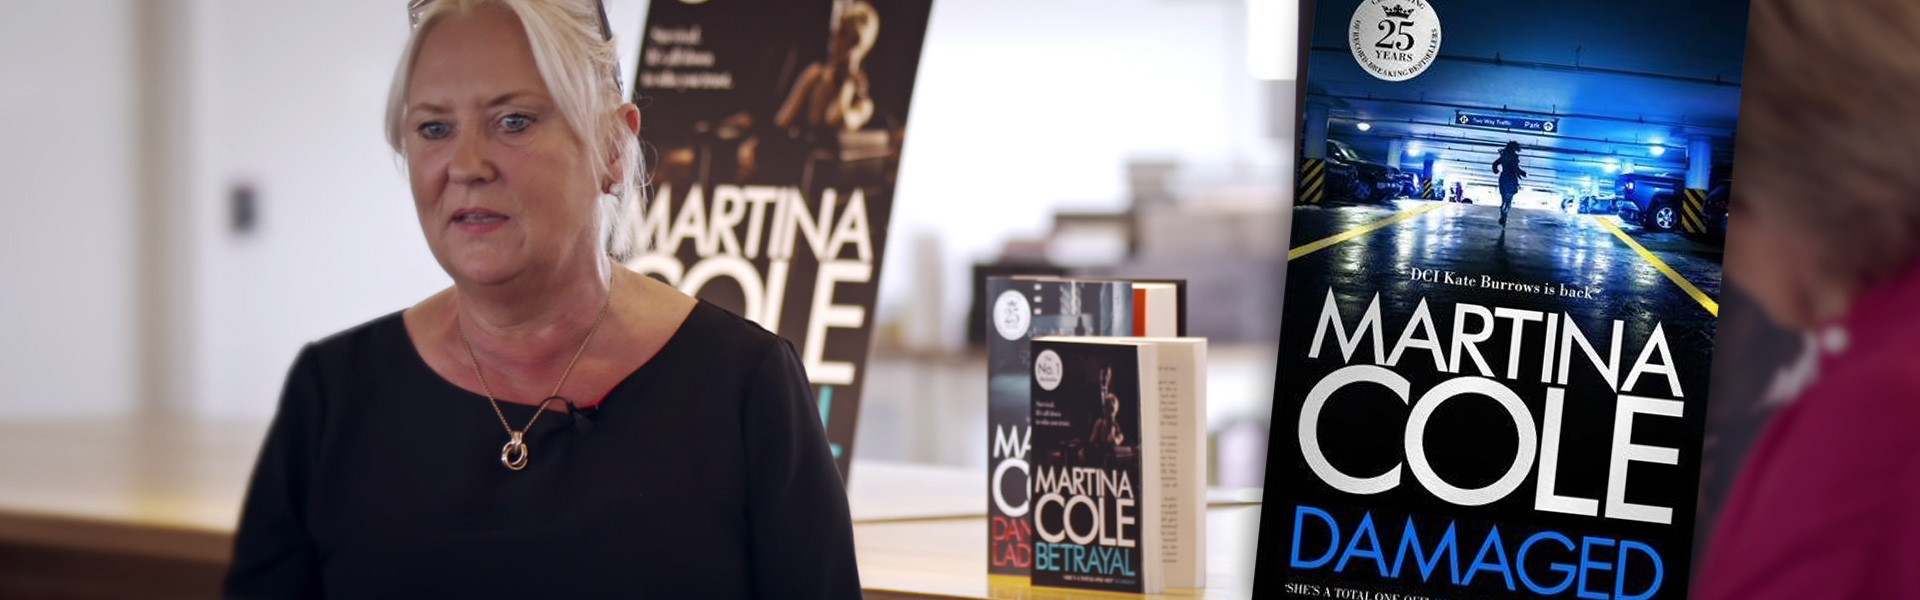 Exclusive Video! Martina Cole Discusses How Policing has Changed Since The Ladykiller